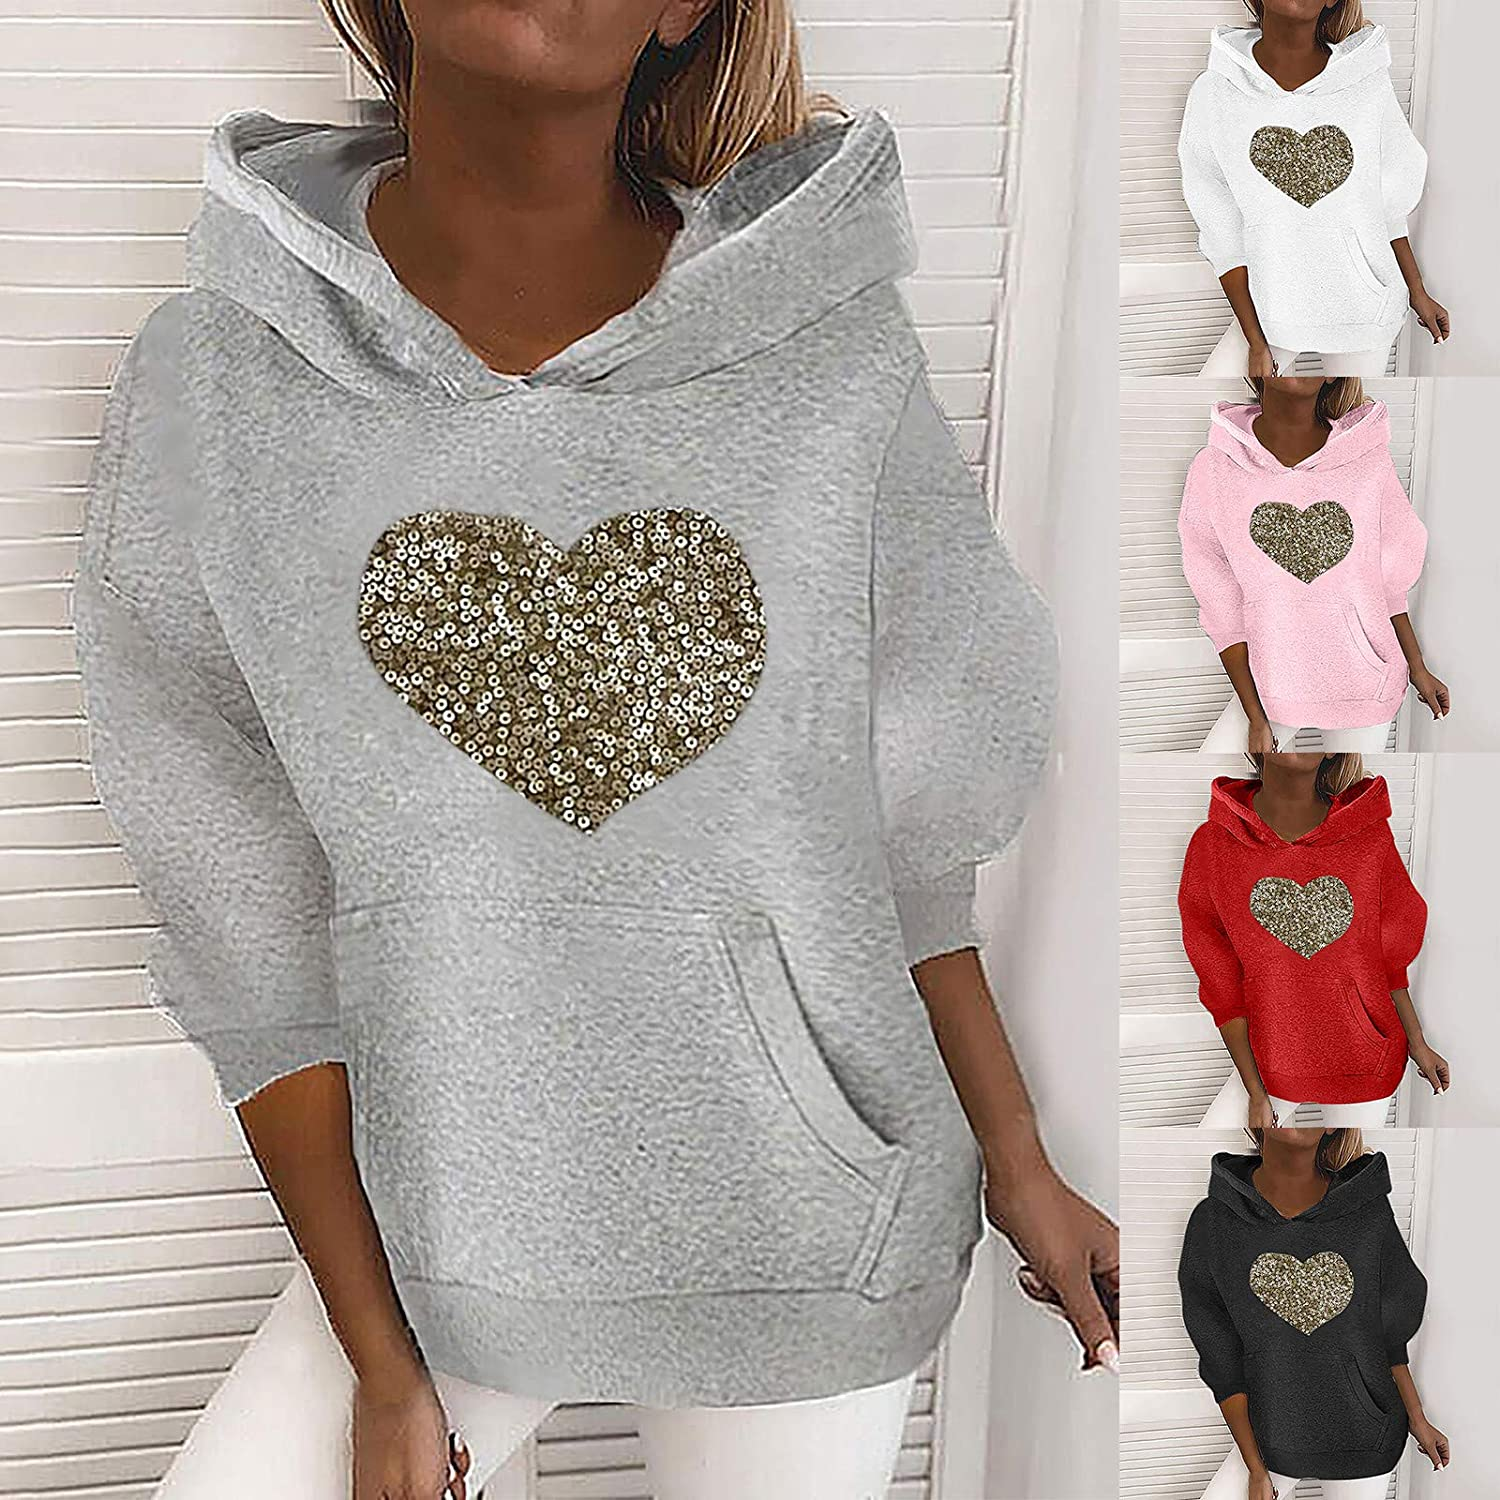 Womens Hoodie Sweatshirts Heart-Shaped Sequin Top Long-Sleeve Loose Sweater Stitching Pocket Casual Blouse